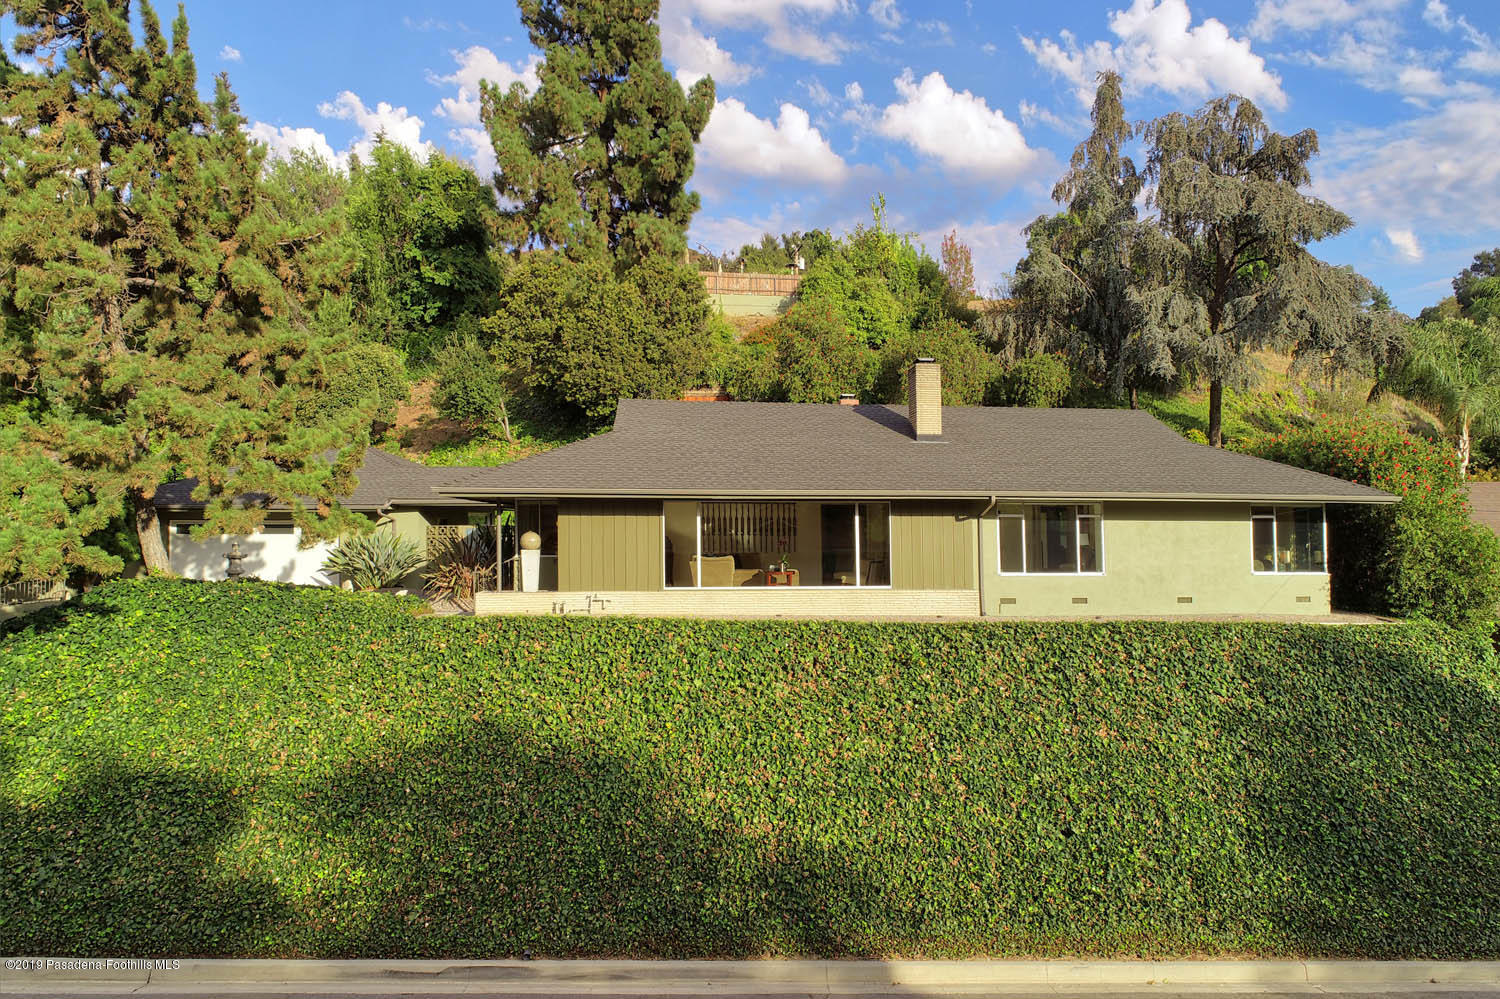 3418 Sierra Glen Road, Glendale, California